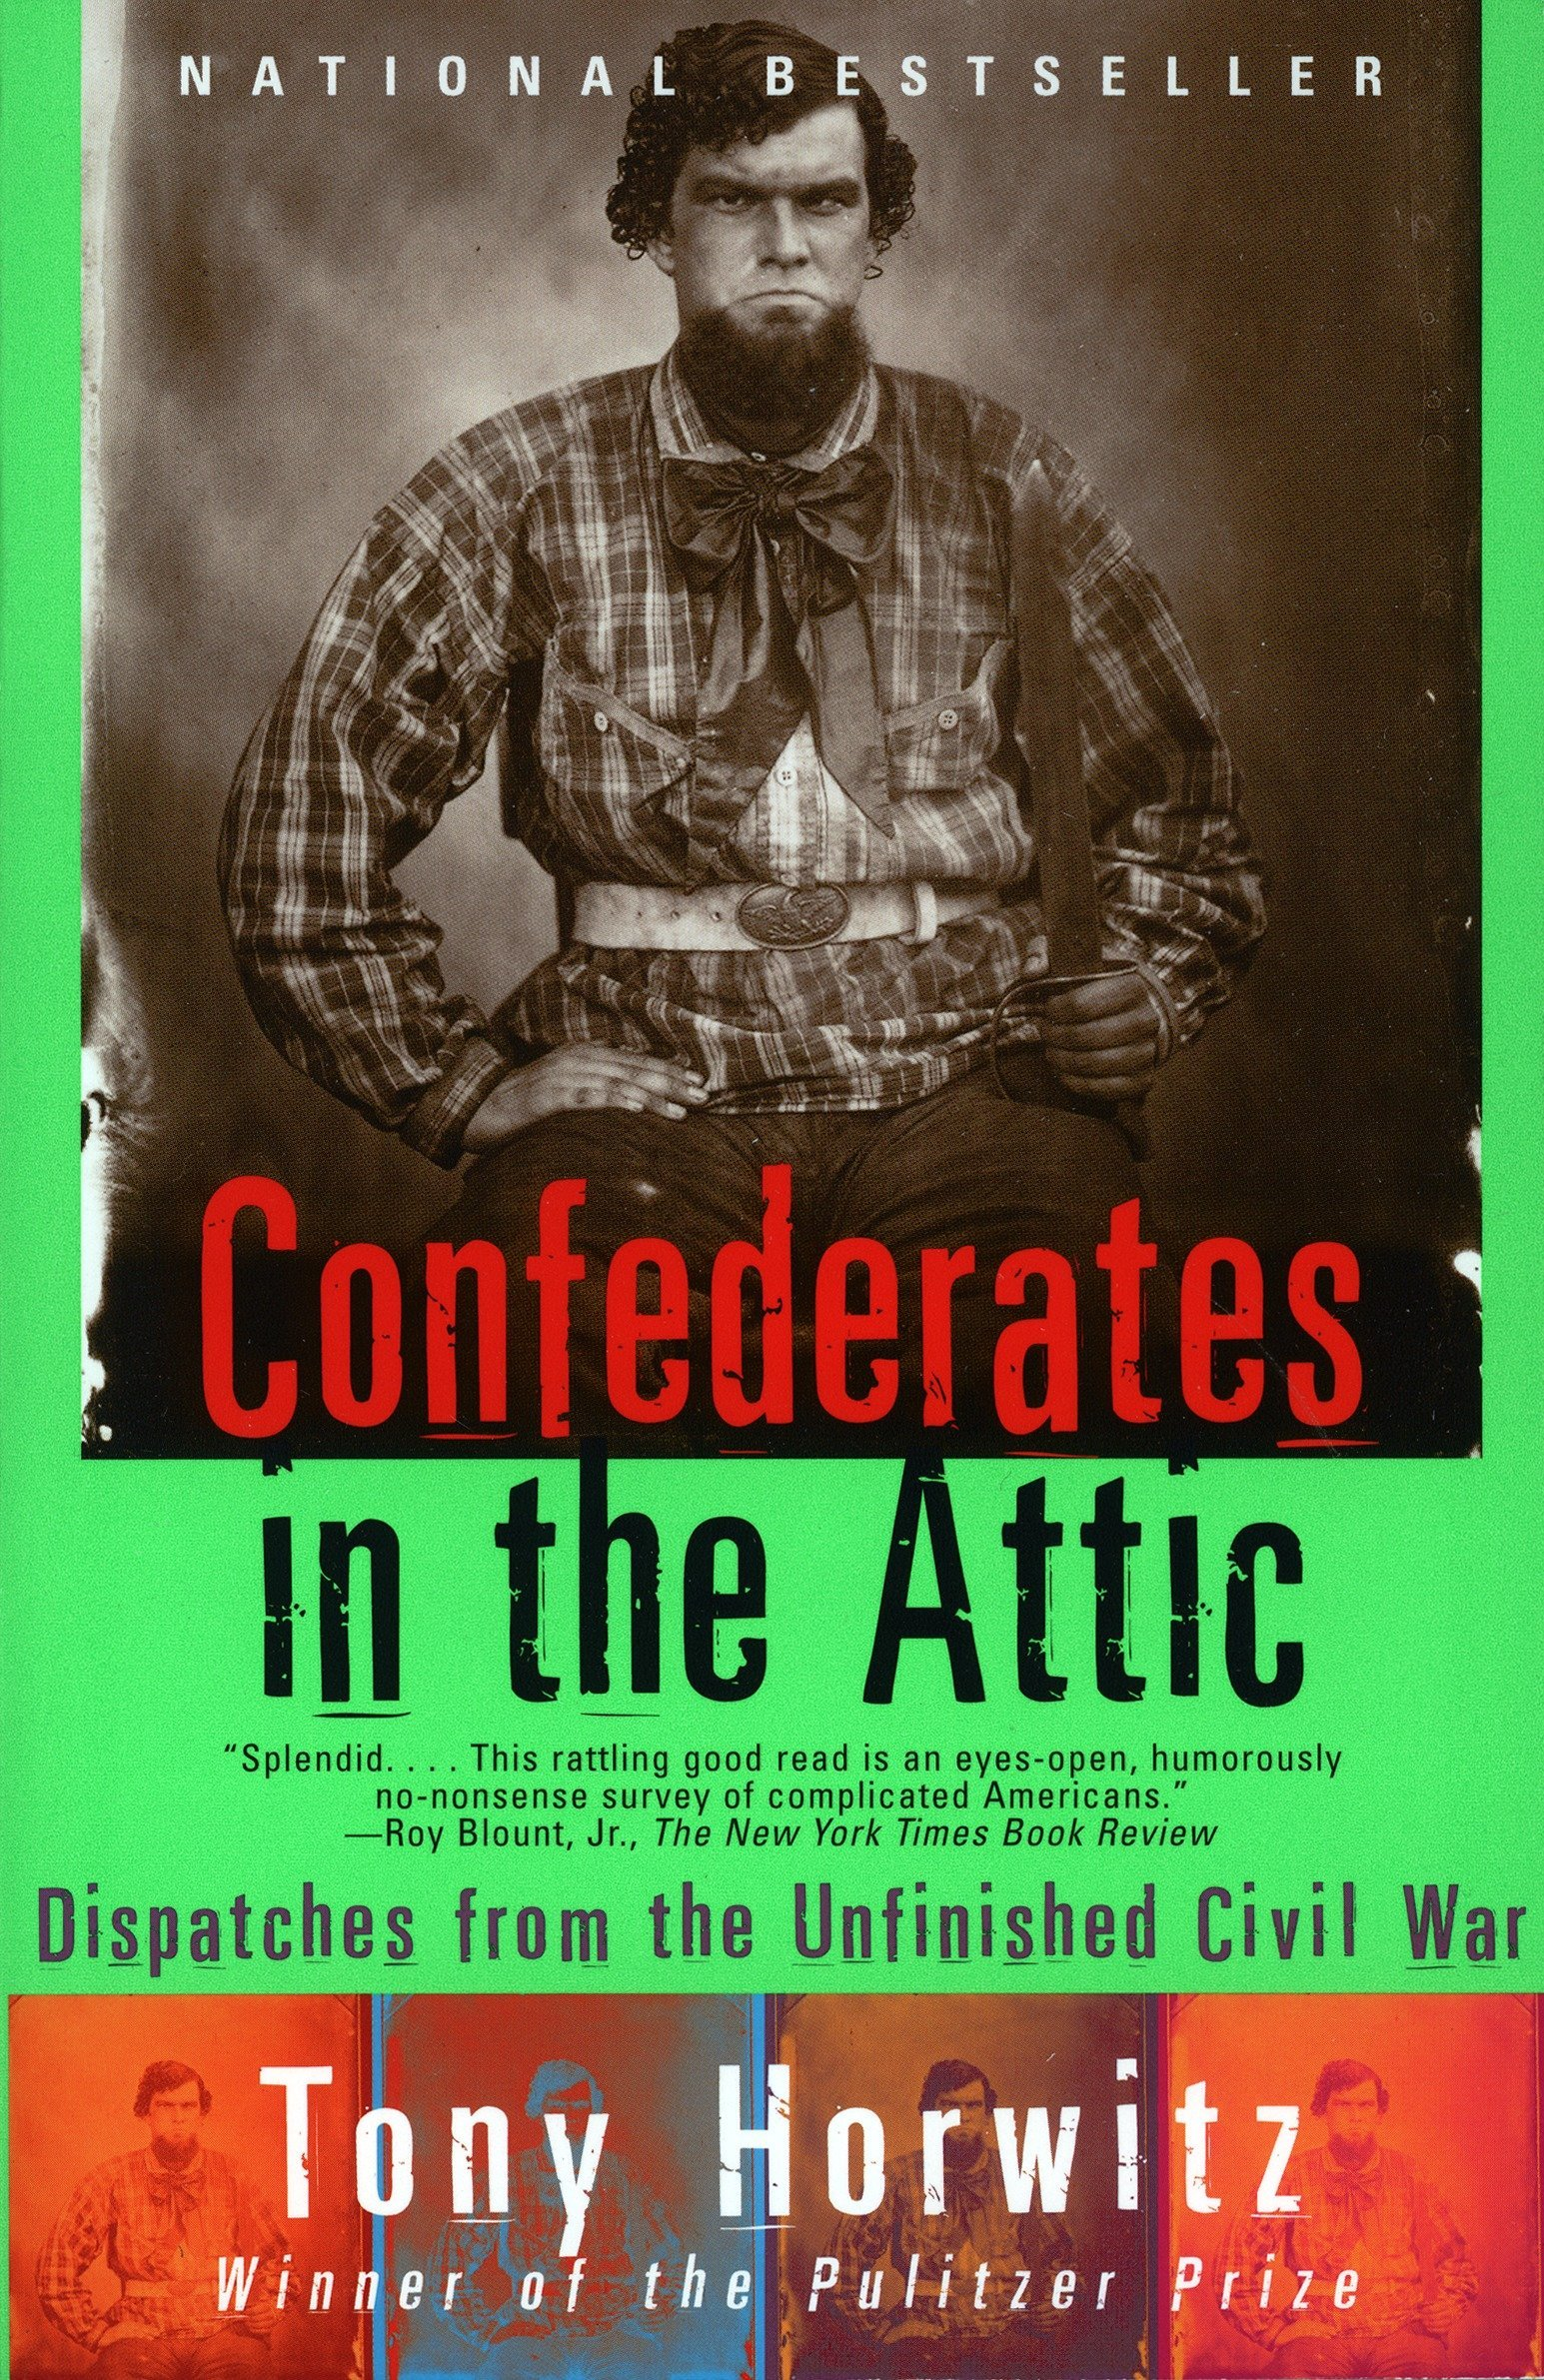 Image result for Confederates in the Attic